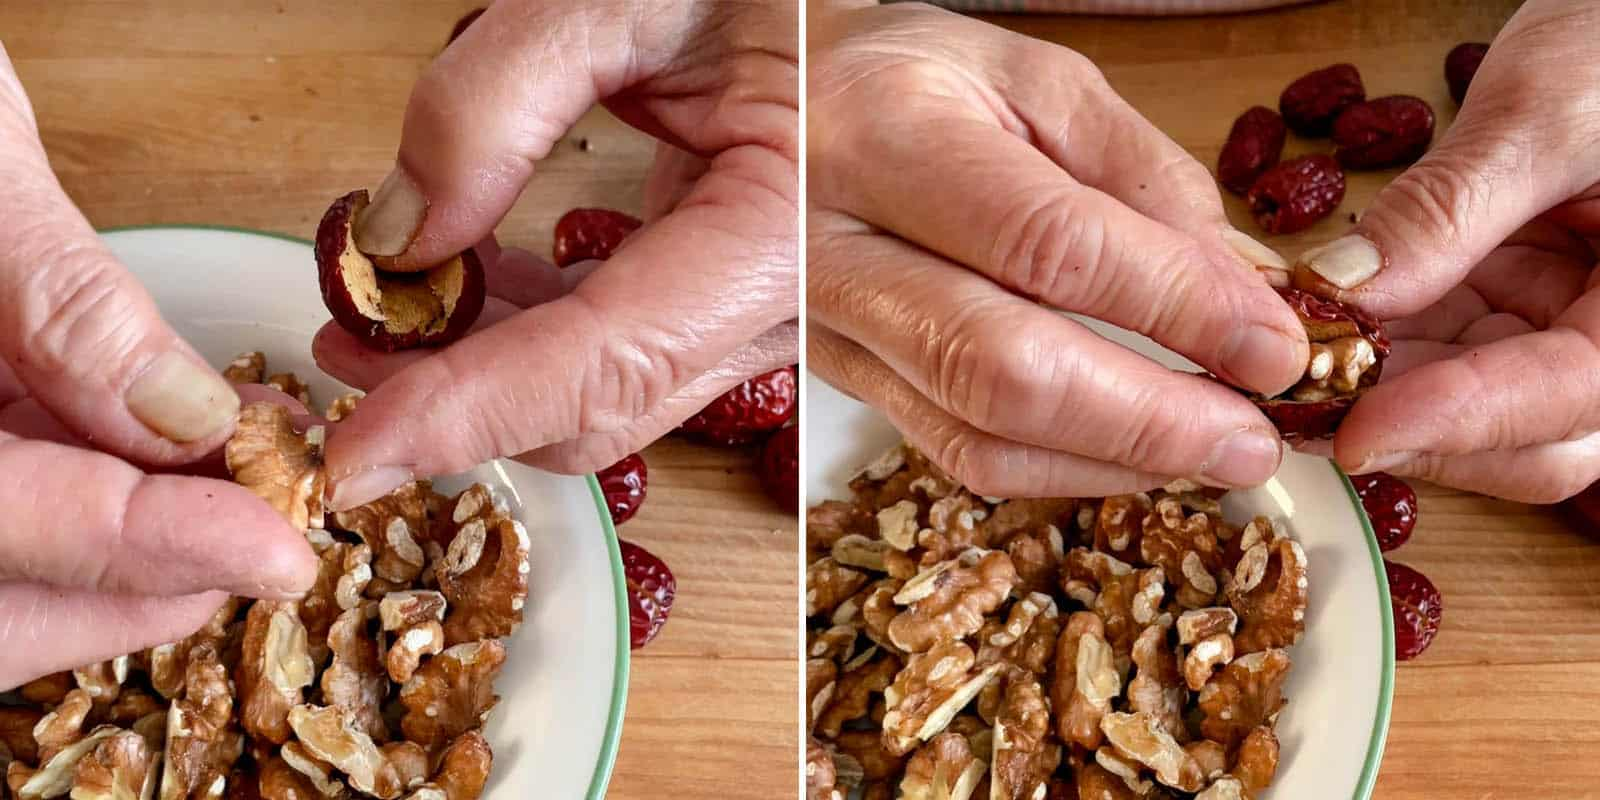 Stuffing dates with walnuts